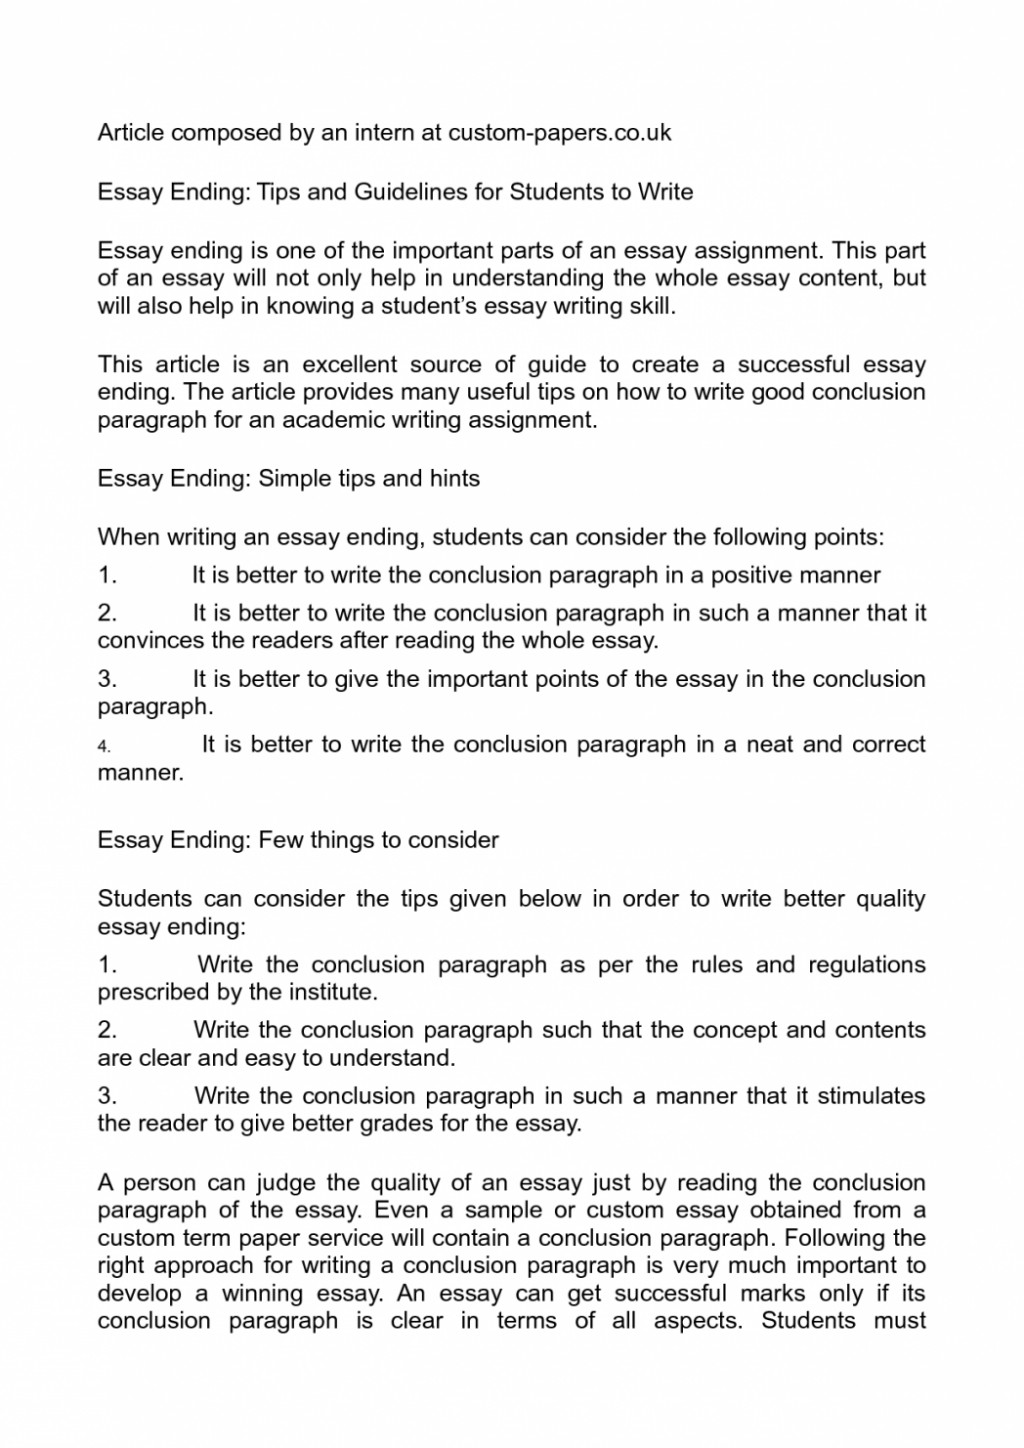 013 Good Ways To End An Essay Example Ending Is It Okay With Question Pzwnx My Wrong Outstanding What's The Best Way What A Argumentative College Large